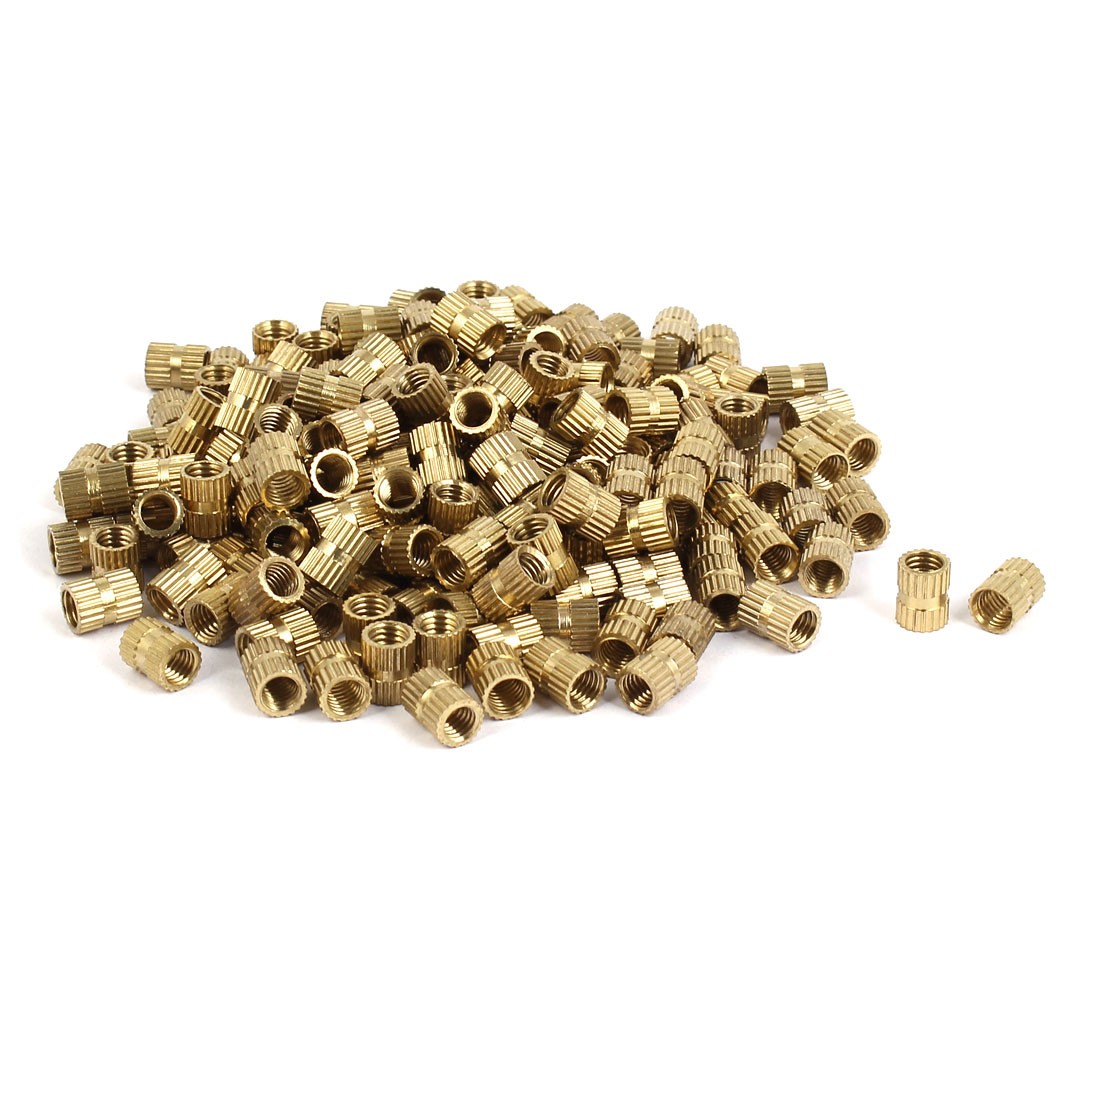 M5 x 8mm Brass Cylinder Injection Molding Knurled Threaded Embedment Nuts 200PCS